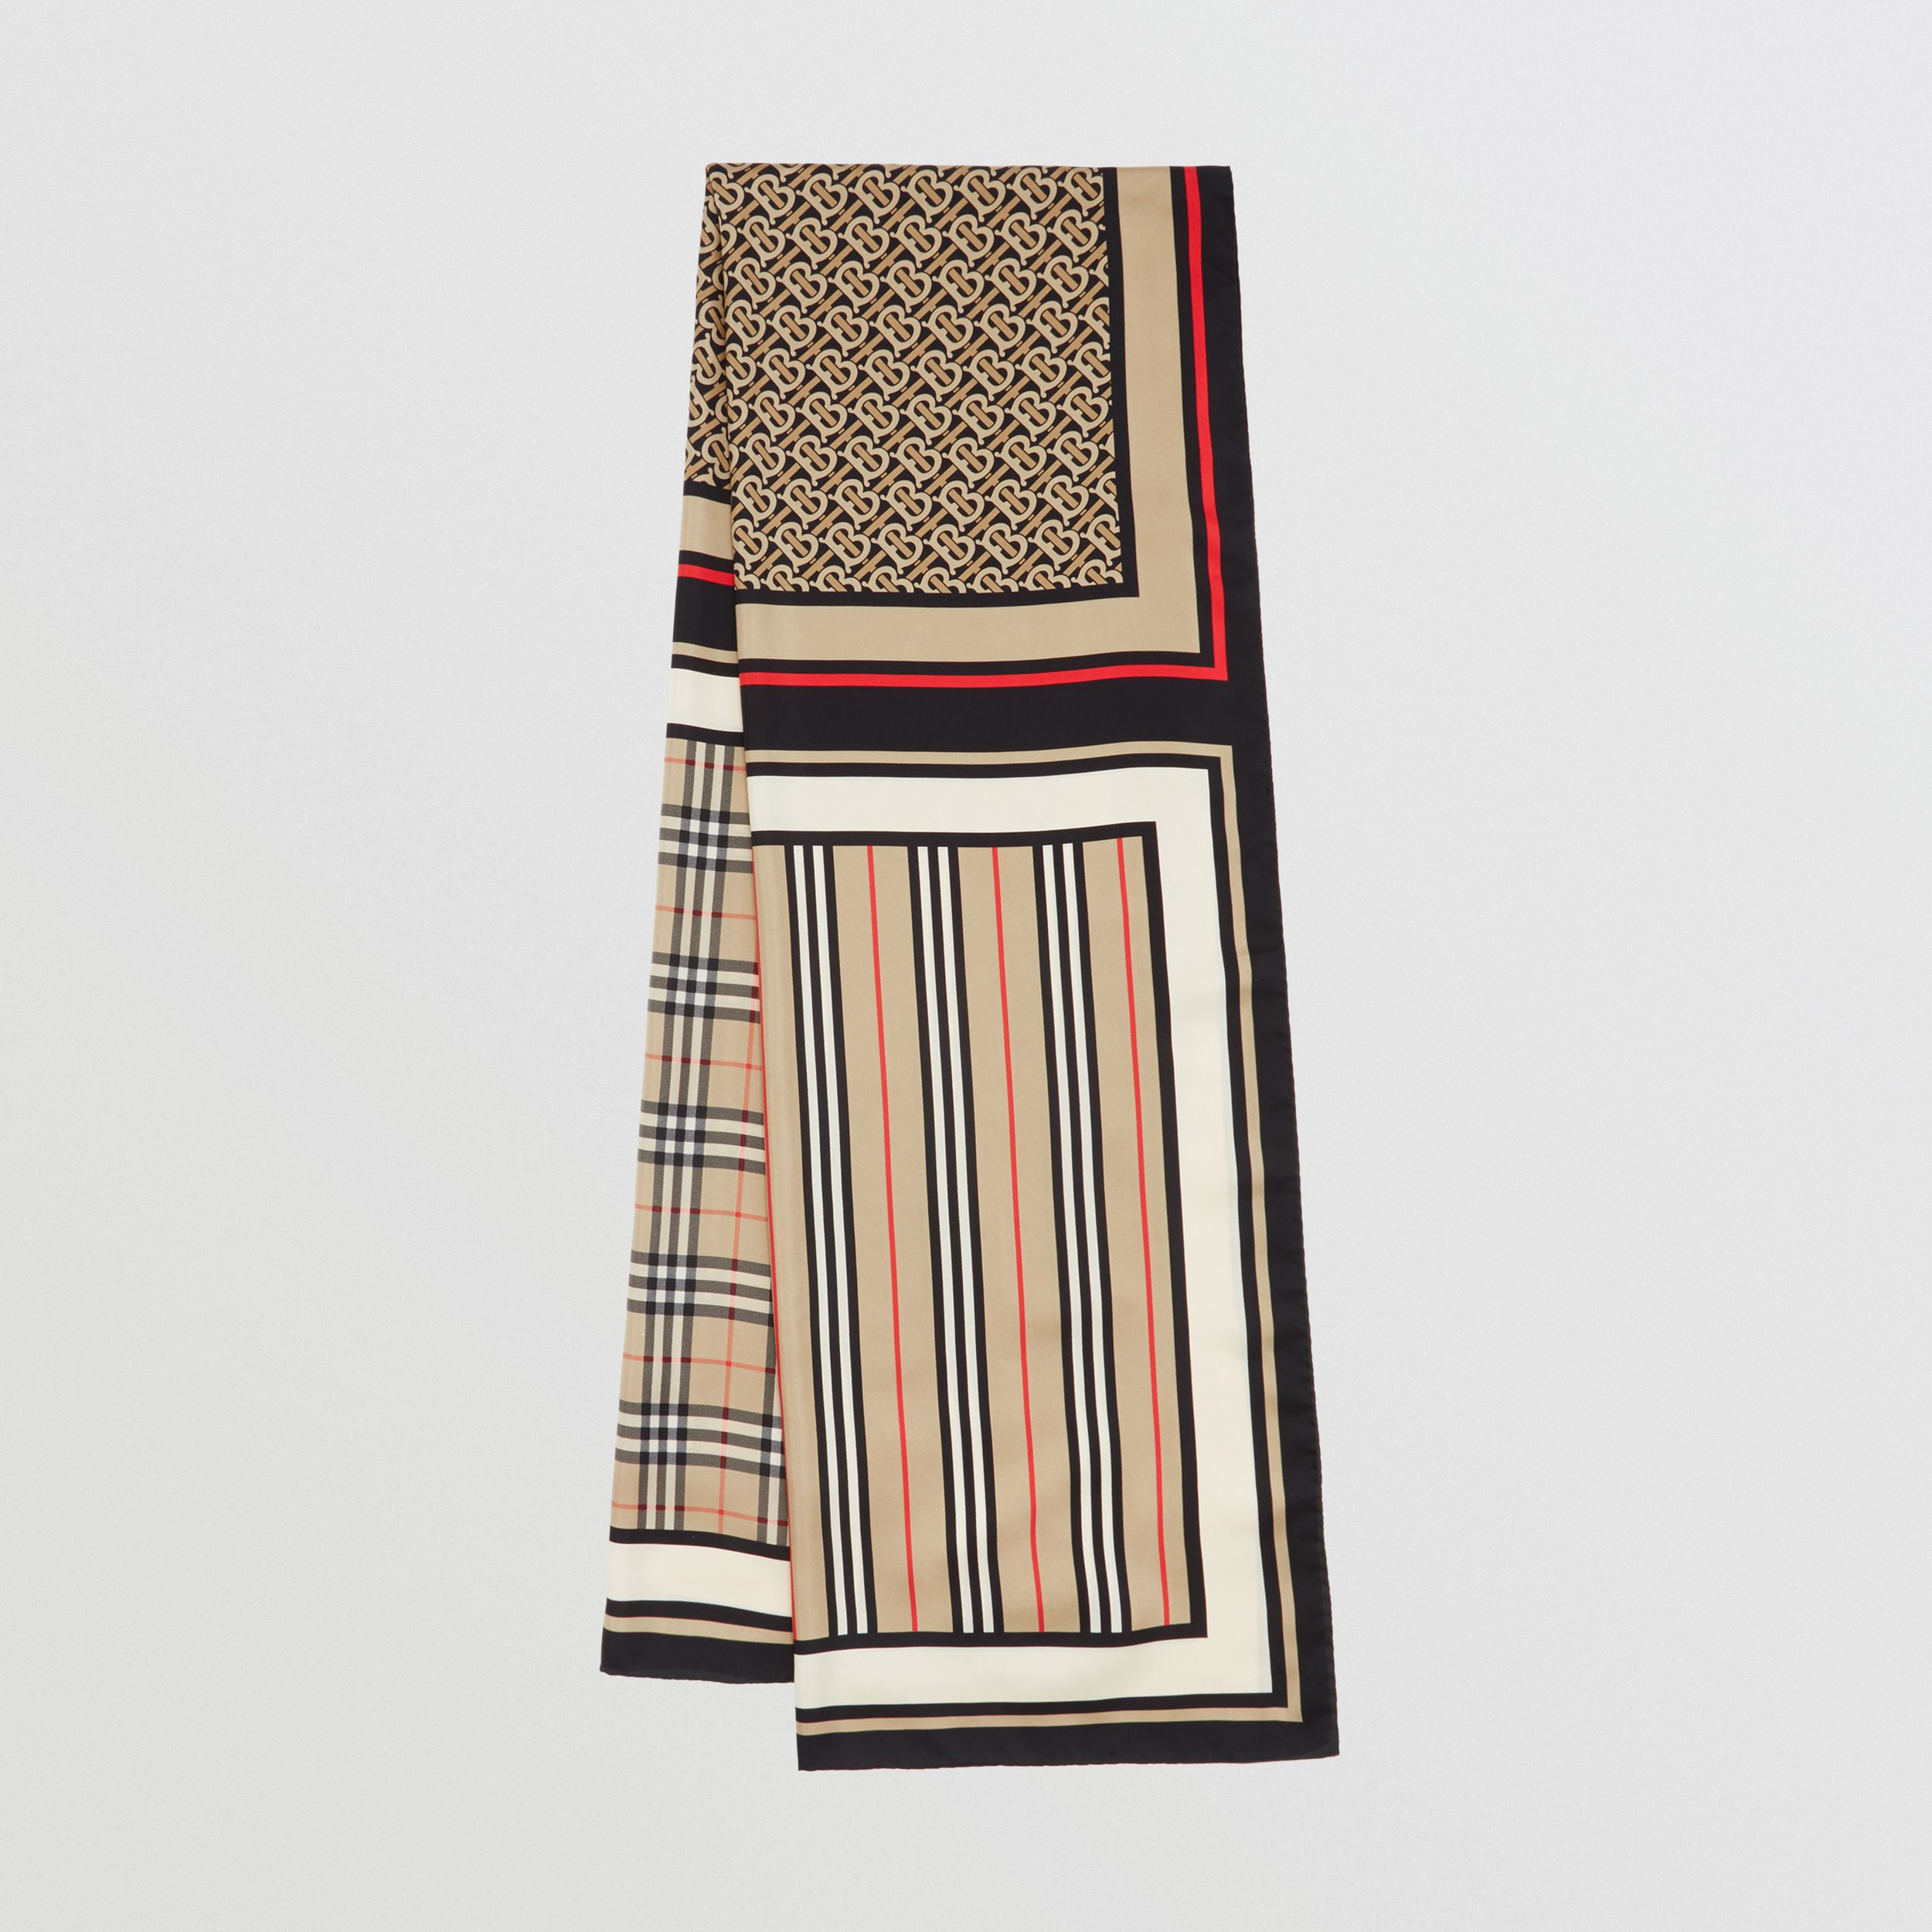 Monogram, Icon Stripe and Check Print Silk Scarf in Archive Beige | Burberry Hong Kong S.A.R. - 1